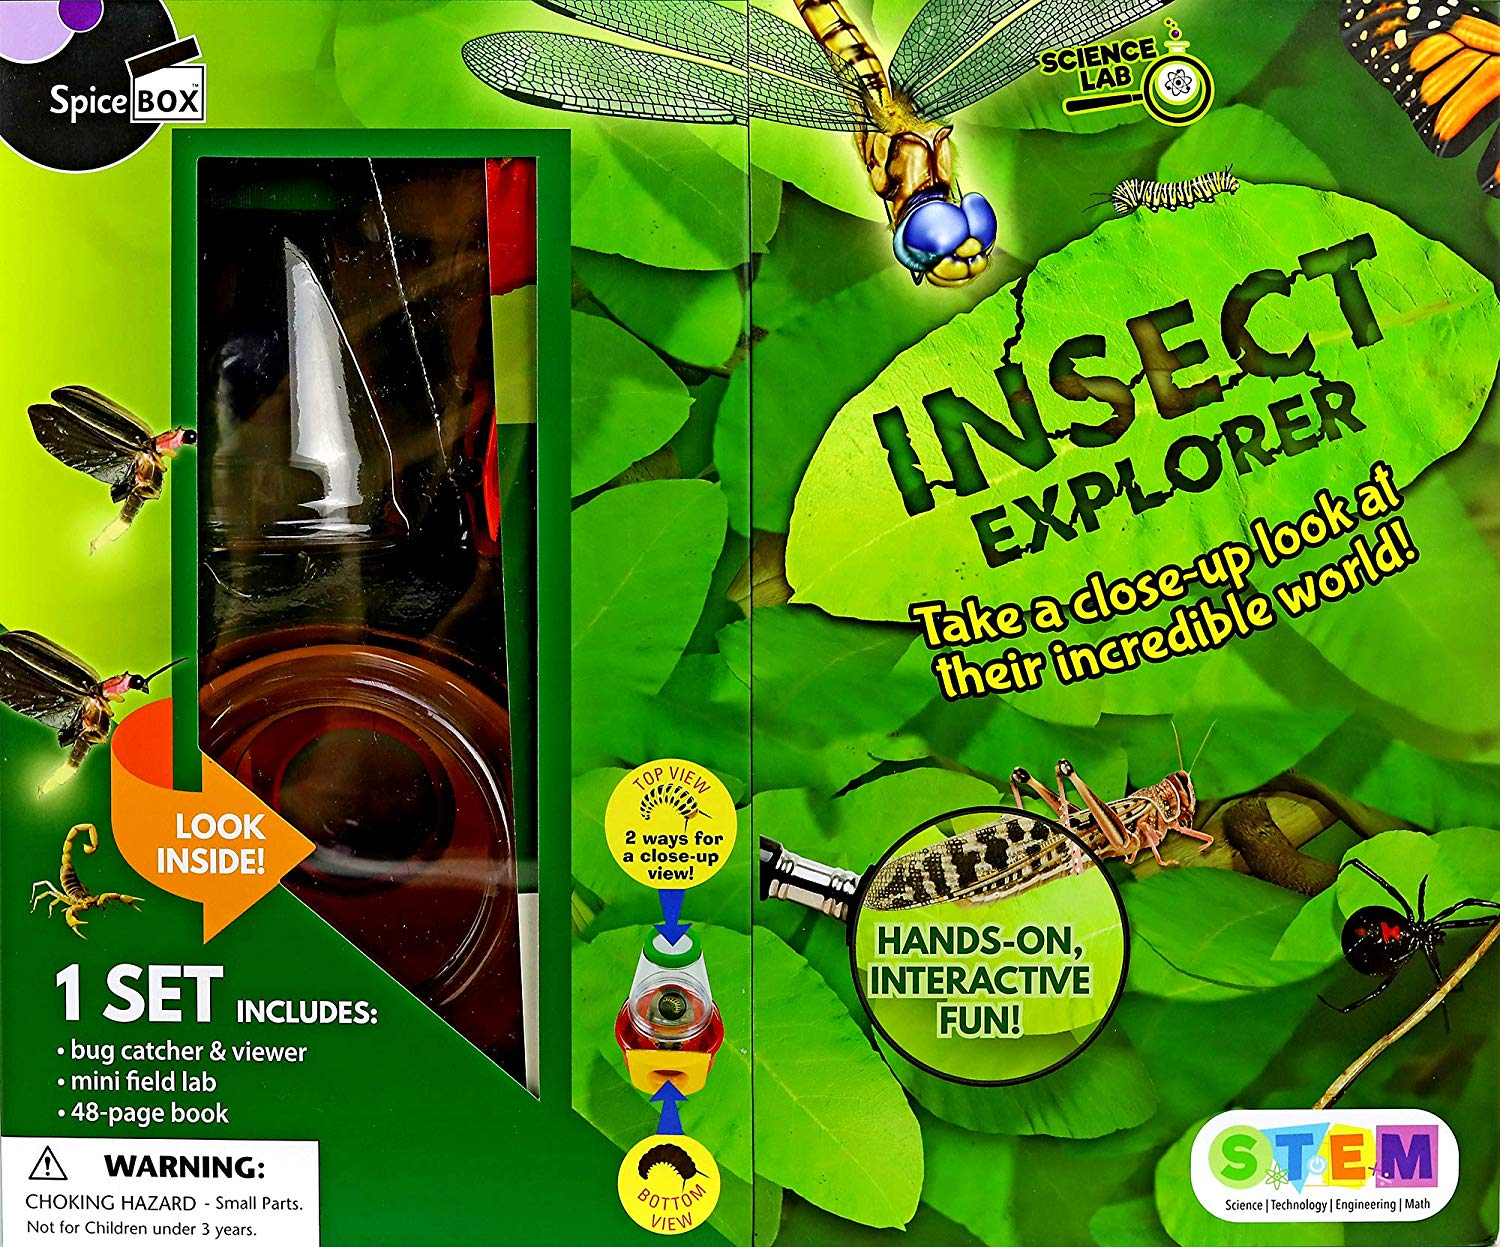 Science Lab Insect Explorer by Spicebox Product Development Ltd.